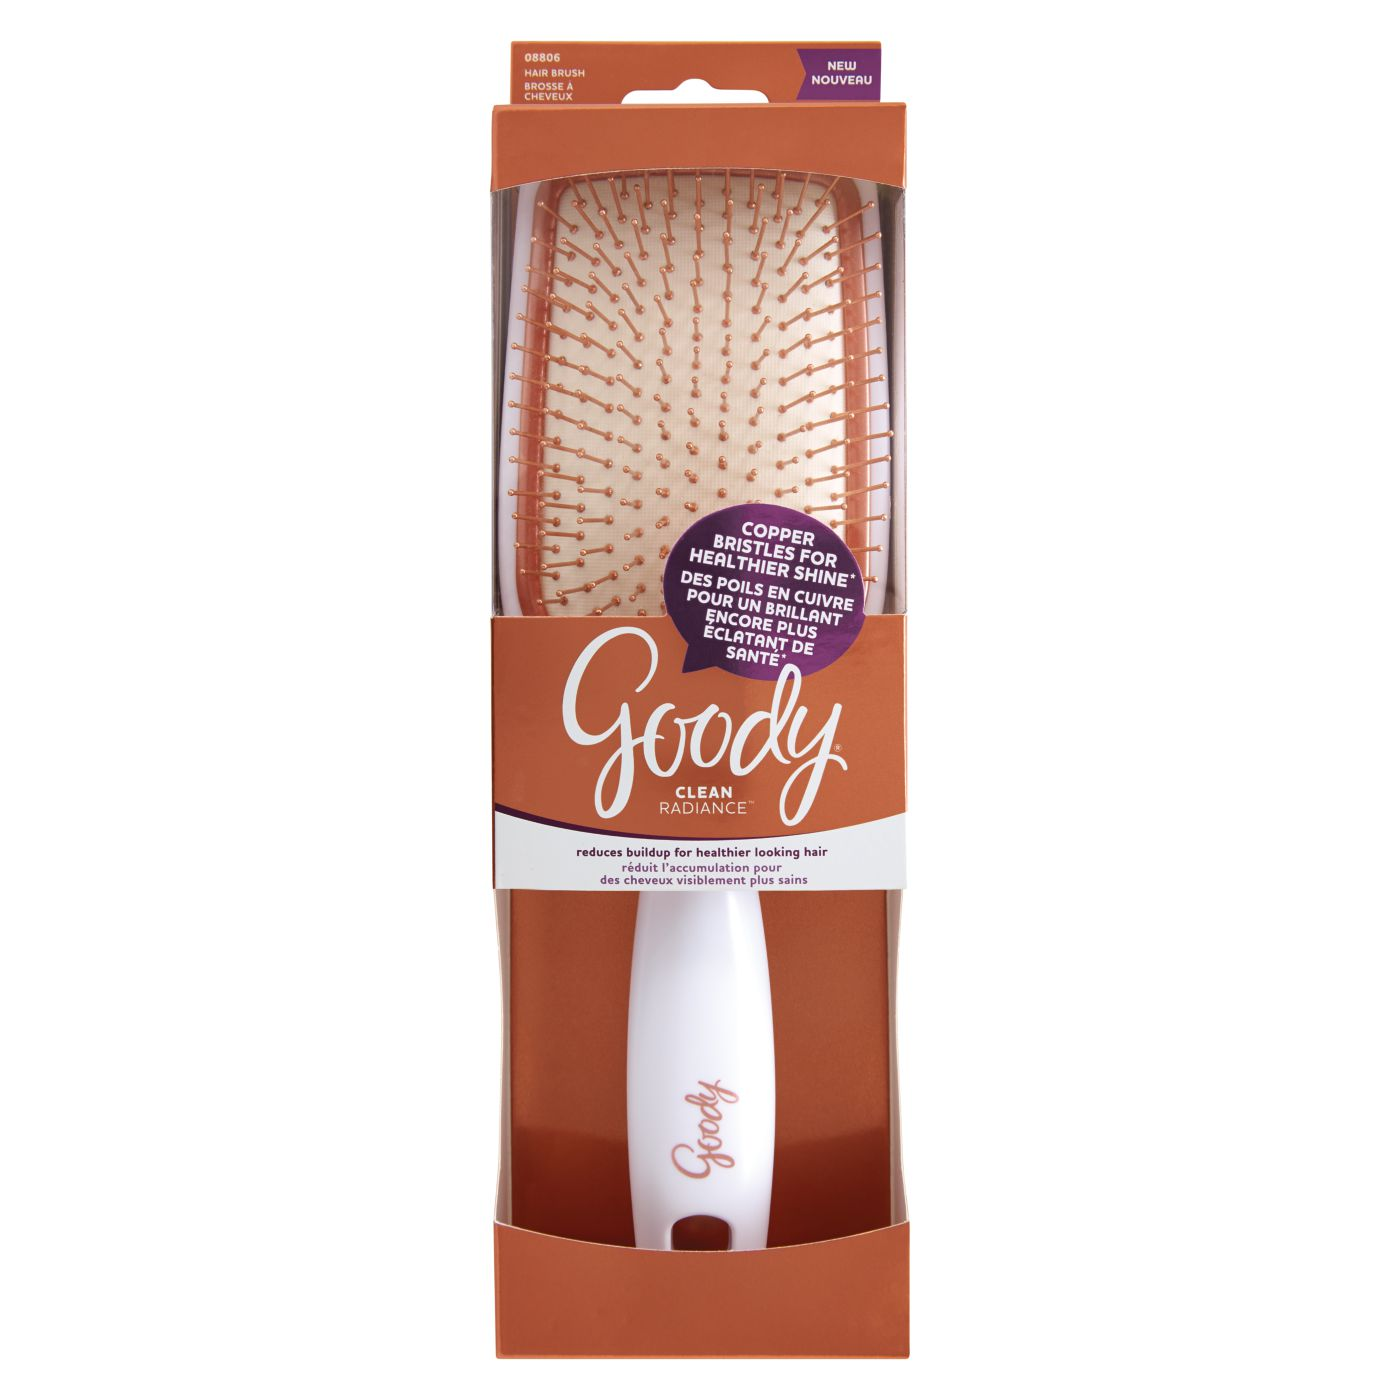 Goody Clean Radiance Square Paddle Brush Copper